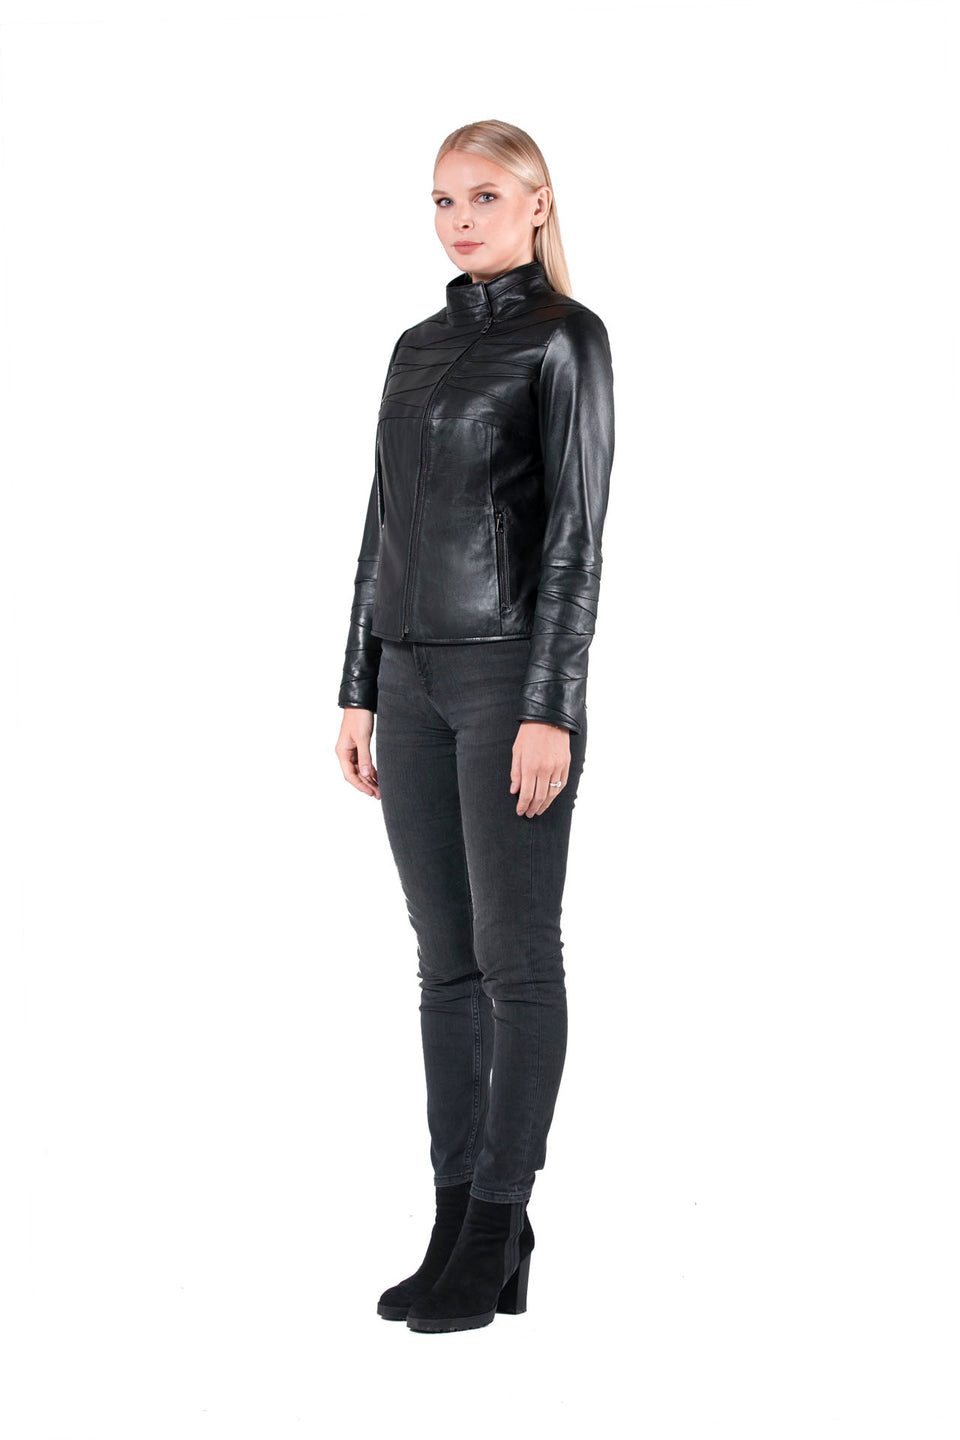 Julia - Black Leather Jacket For Women's - Soft Nappa Jacket